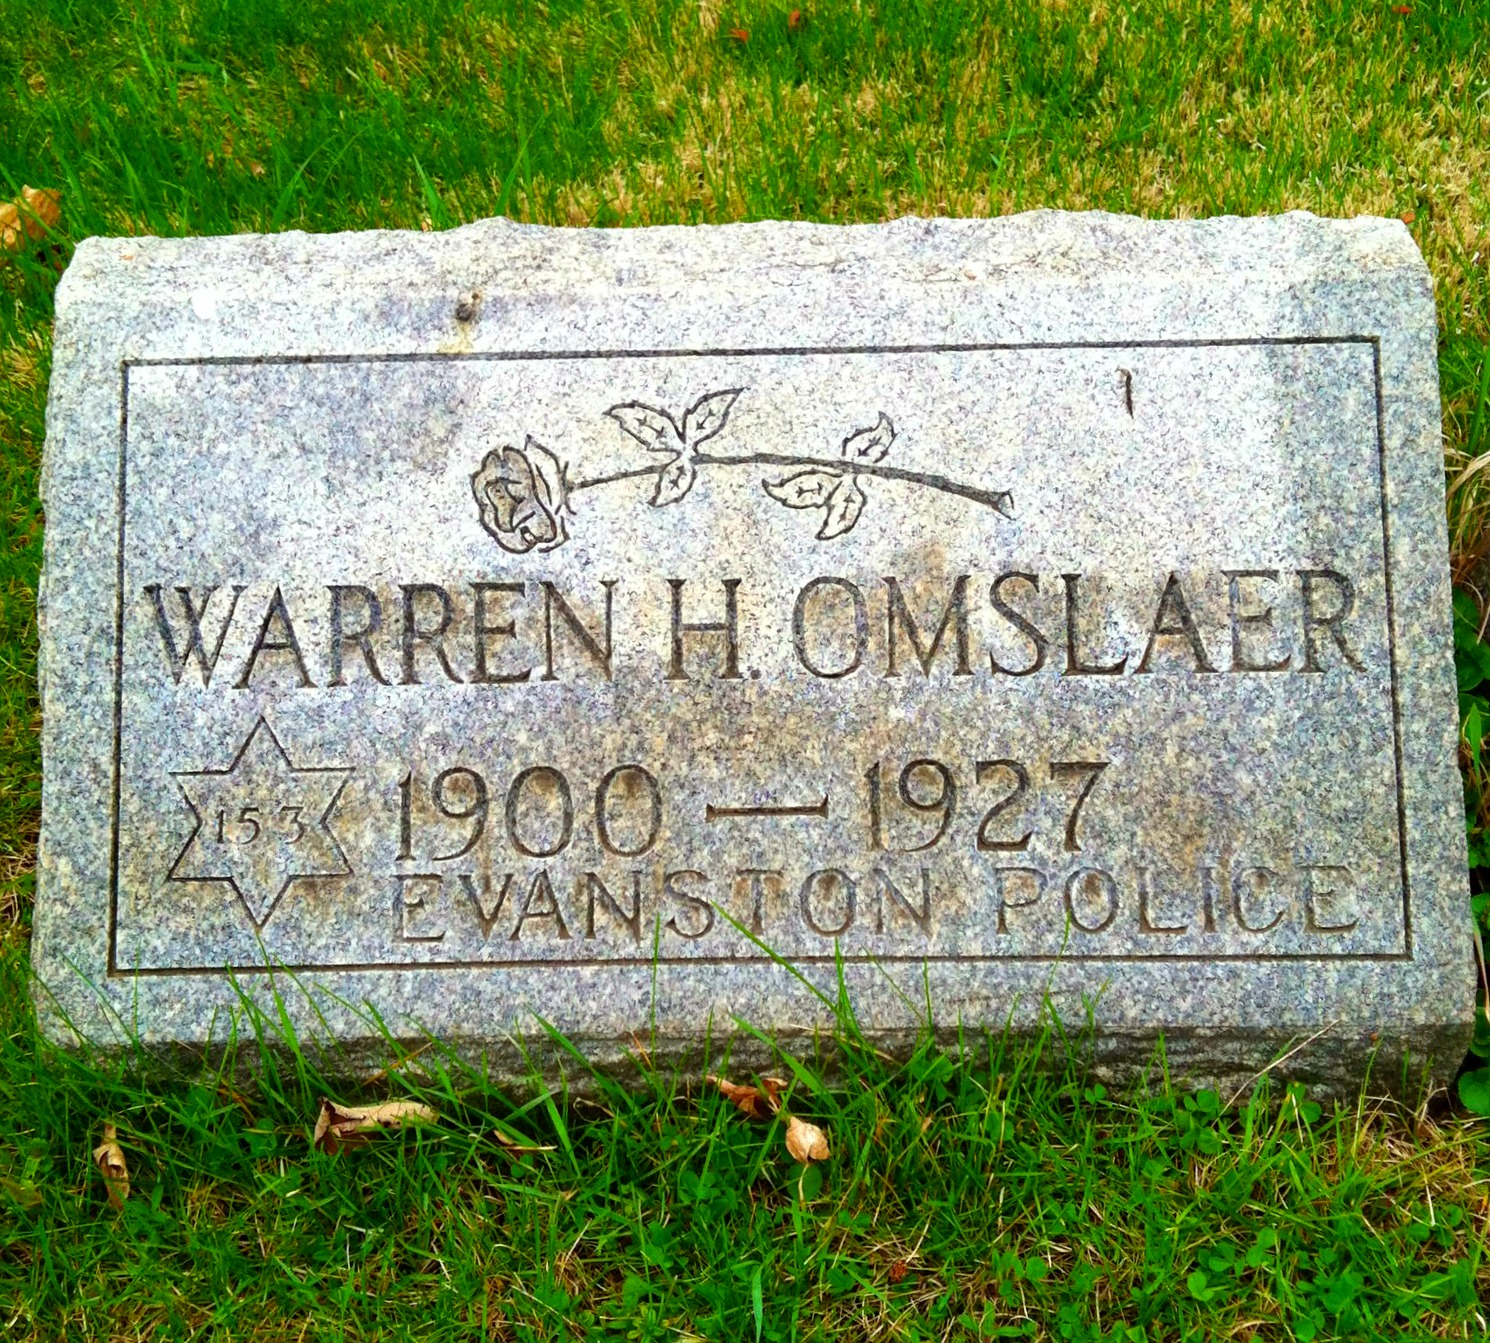 Police Officer Warren Henry Omslaer | Evanston Police Department, Illinois